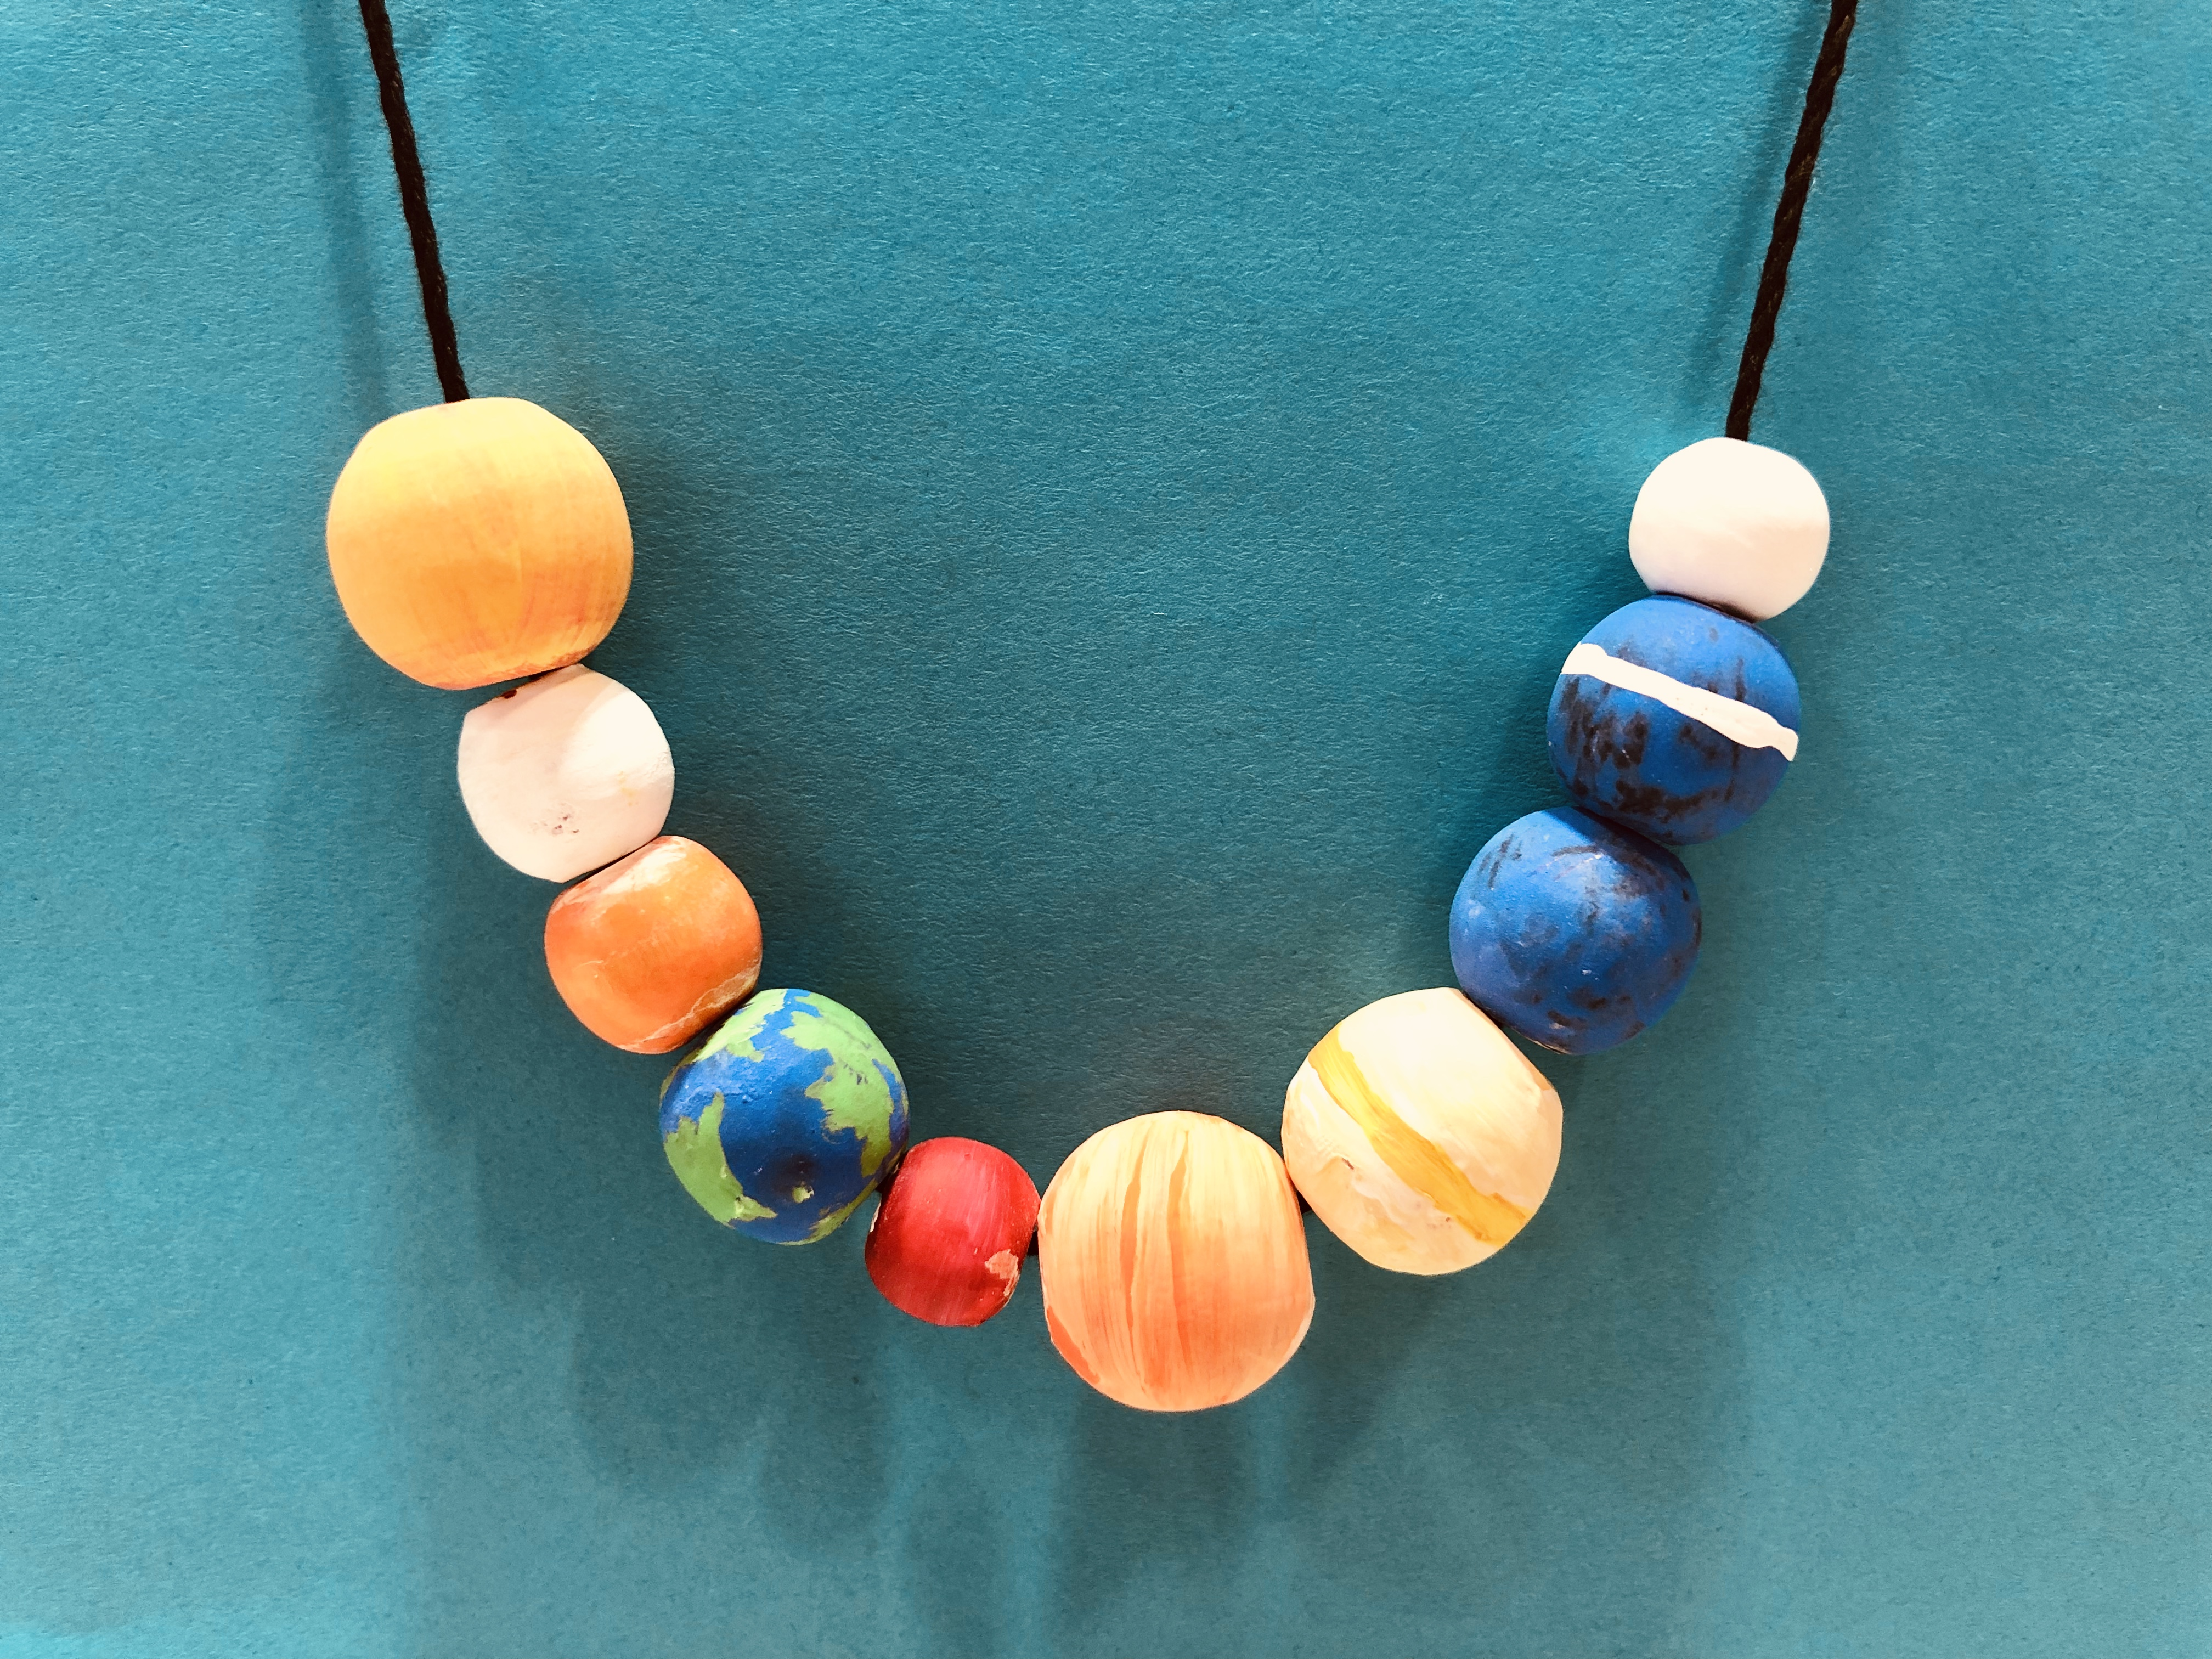 Image of the solar system necklace.